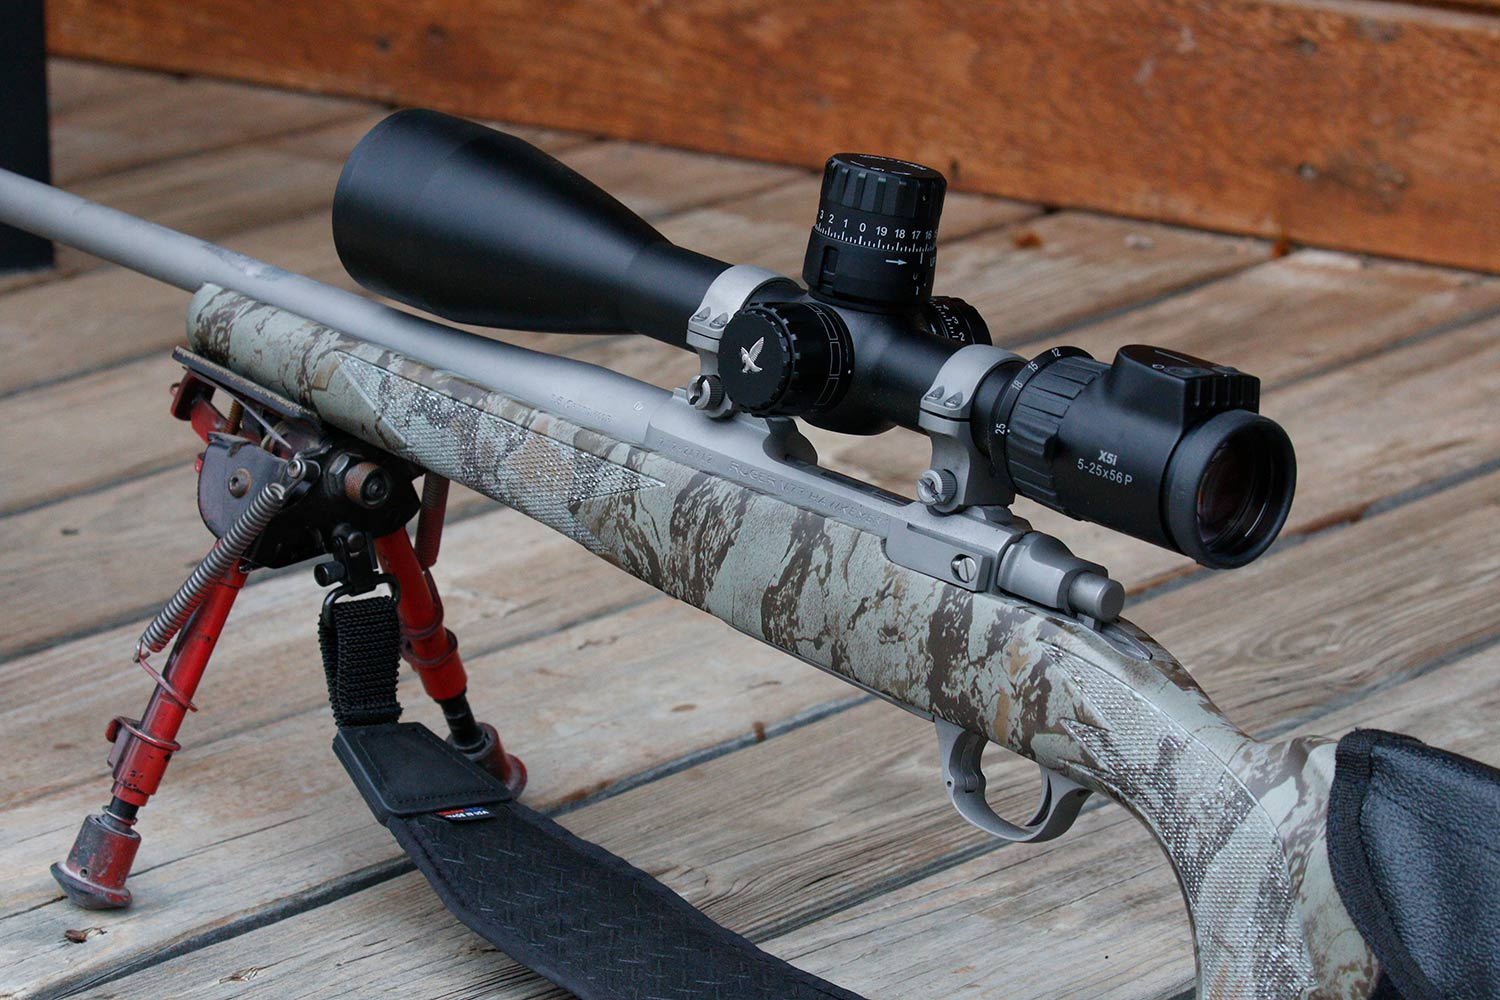 A Swarovski rifle and scope.